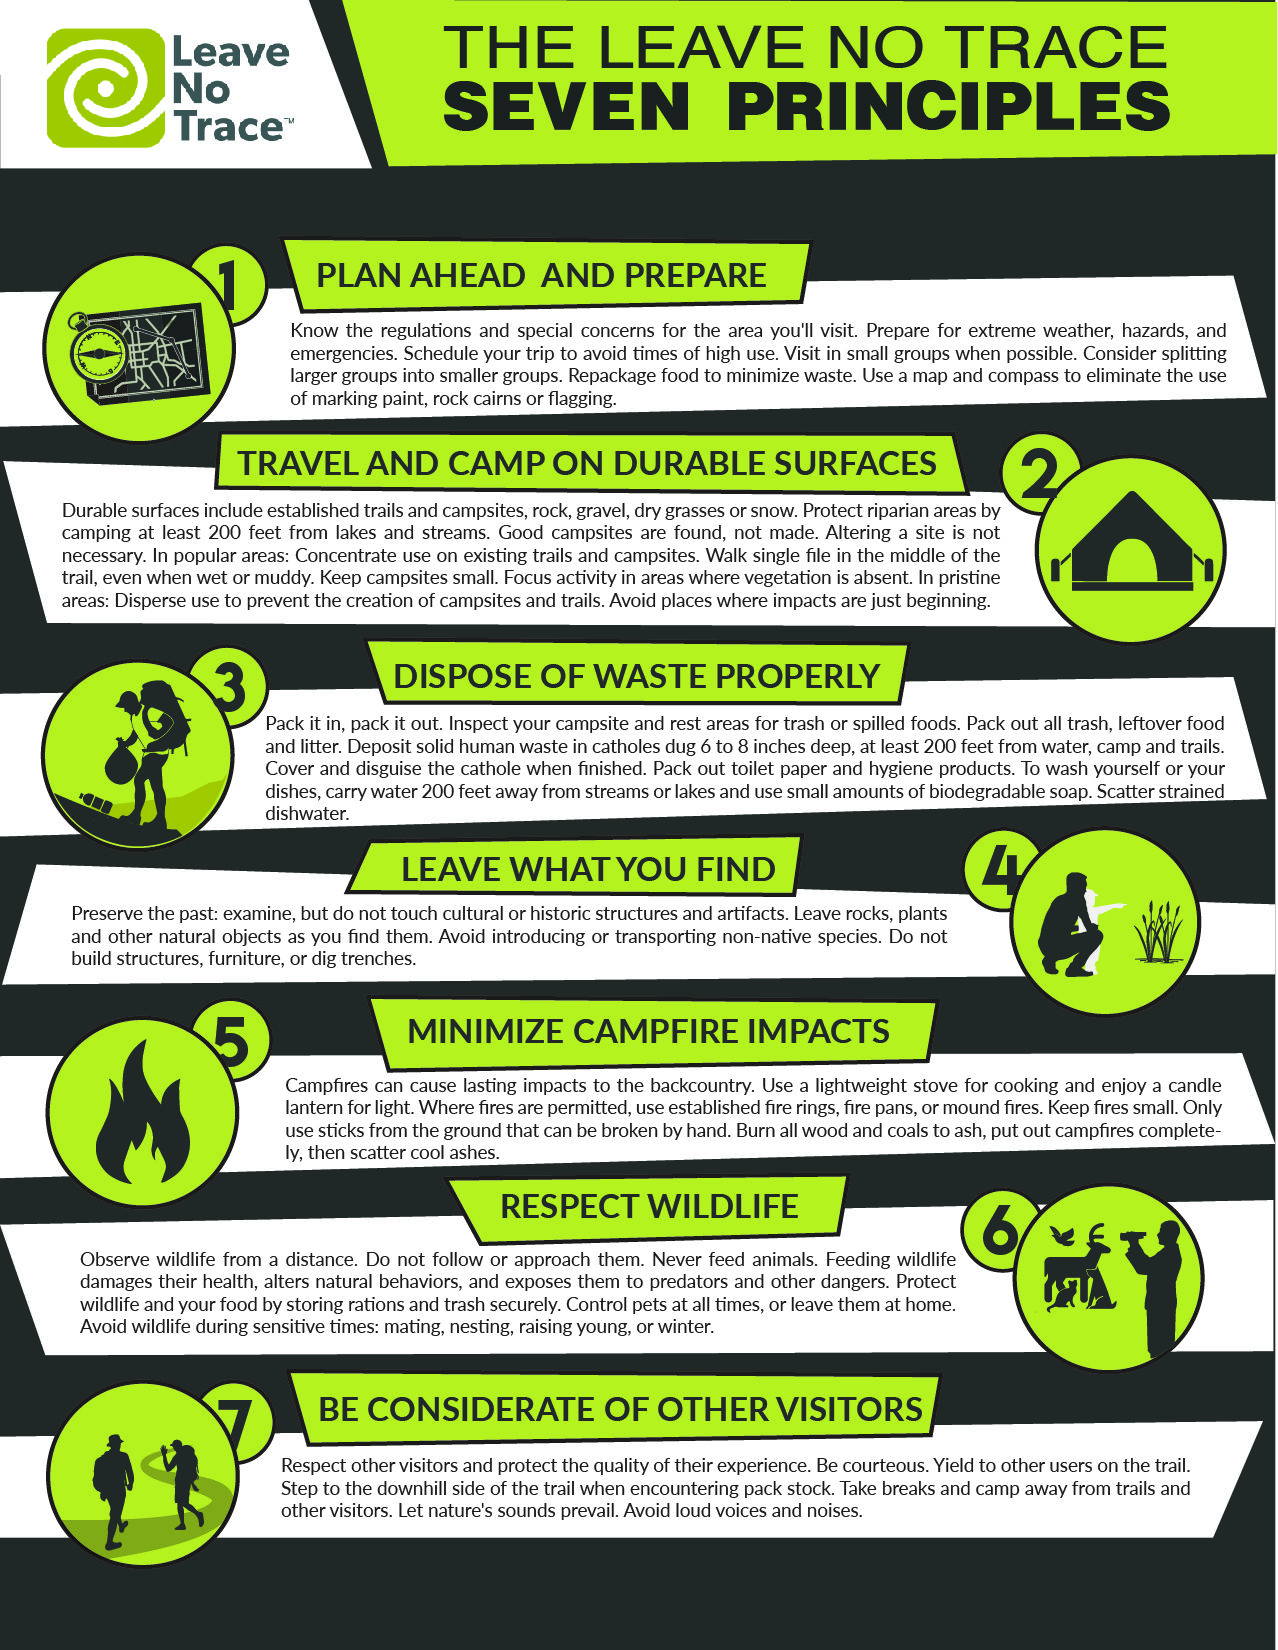 7 Principles Of Leave No Trace Infographic